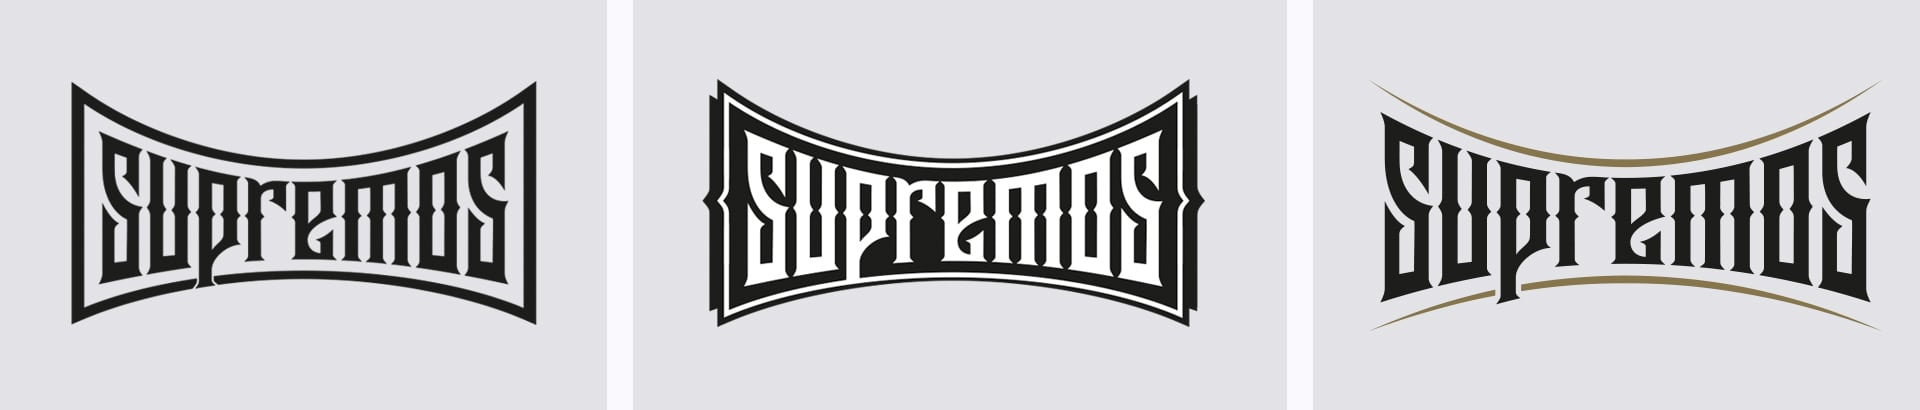 Supremos Logo-Design Typography